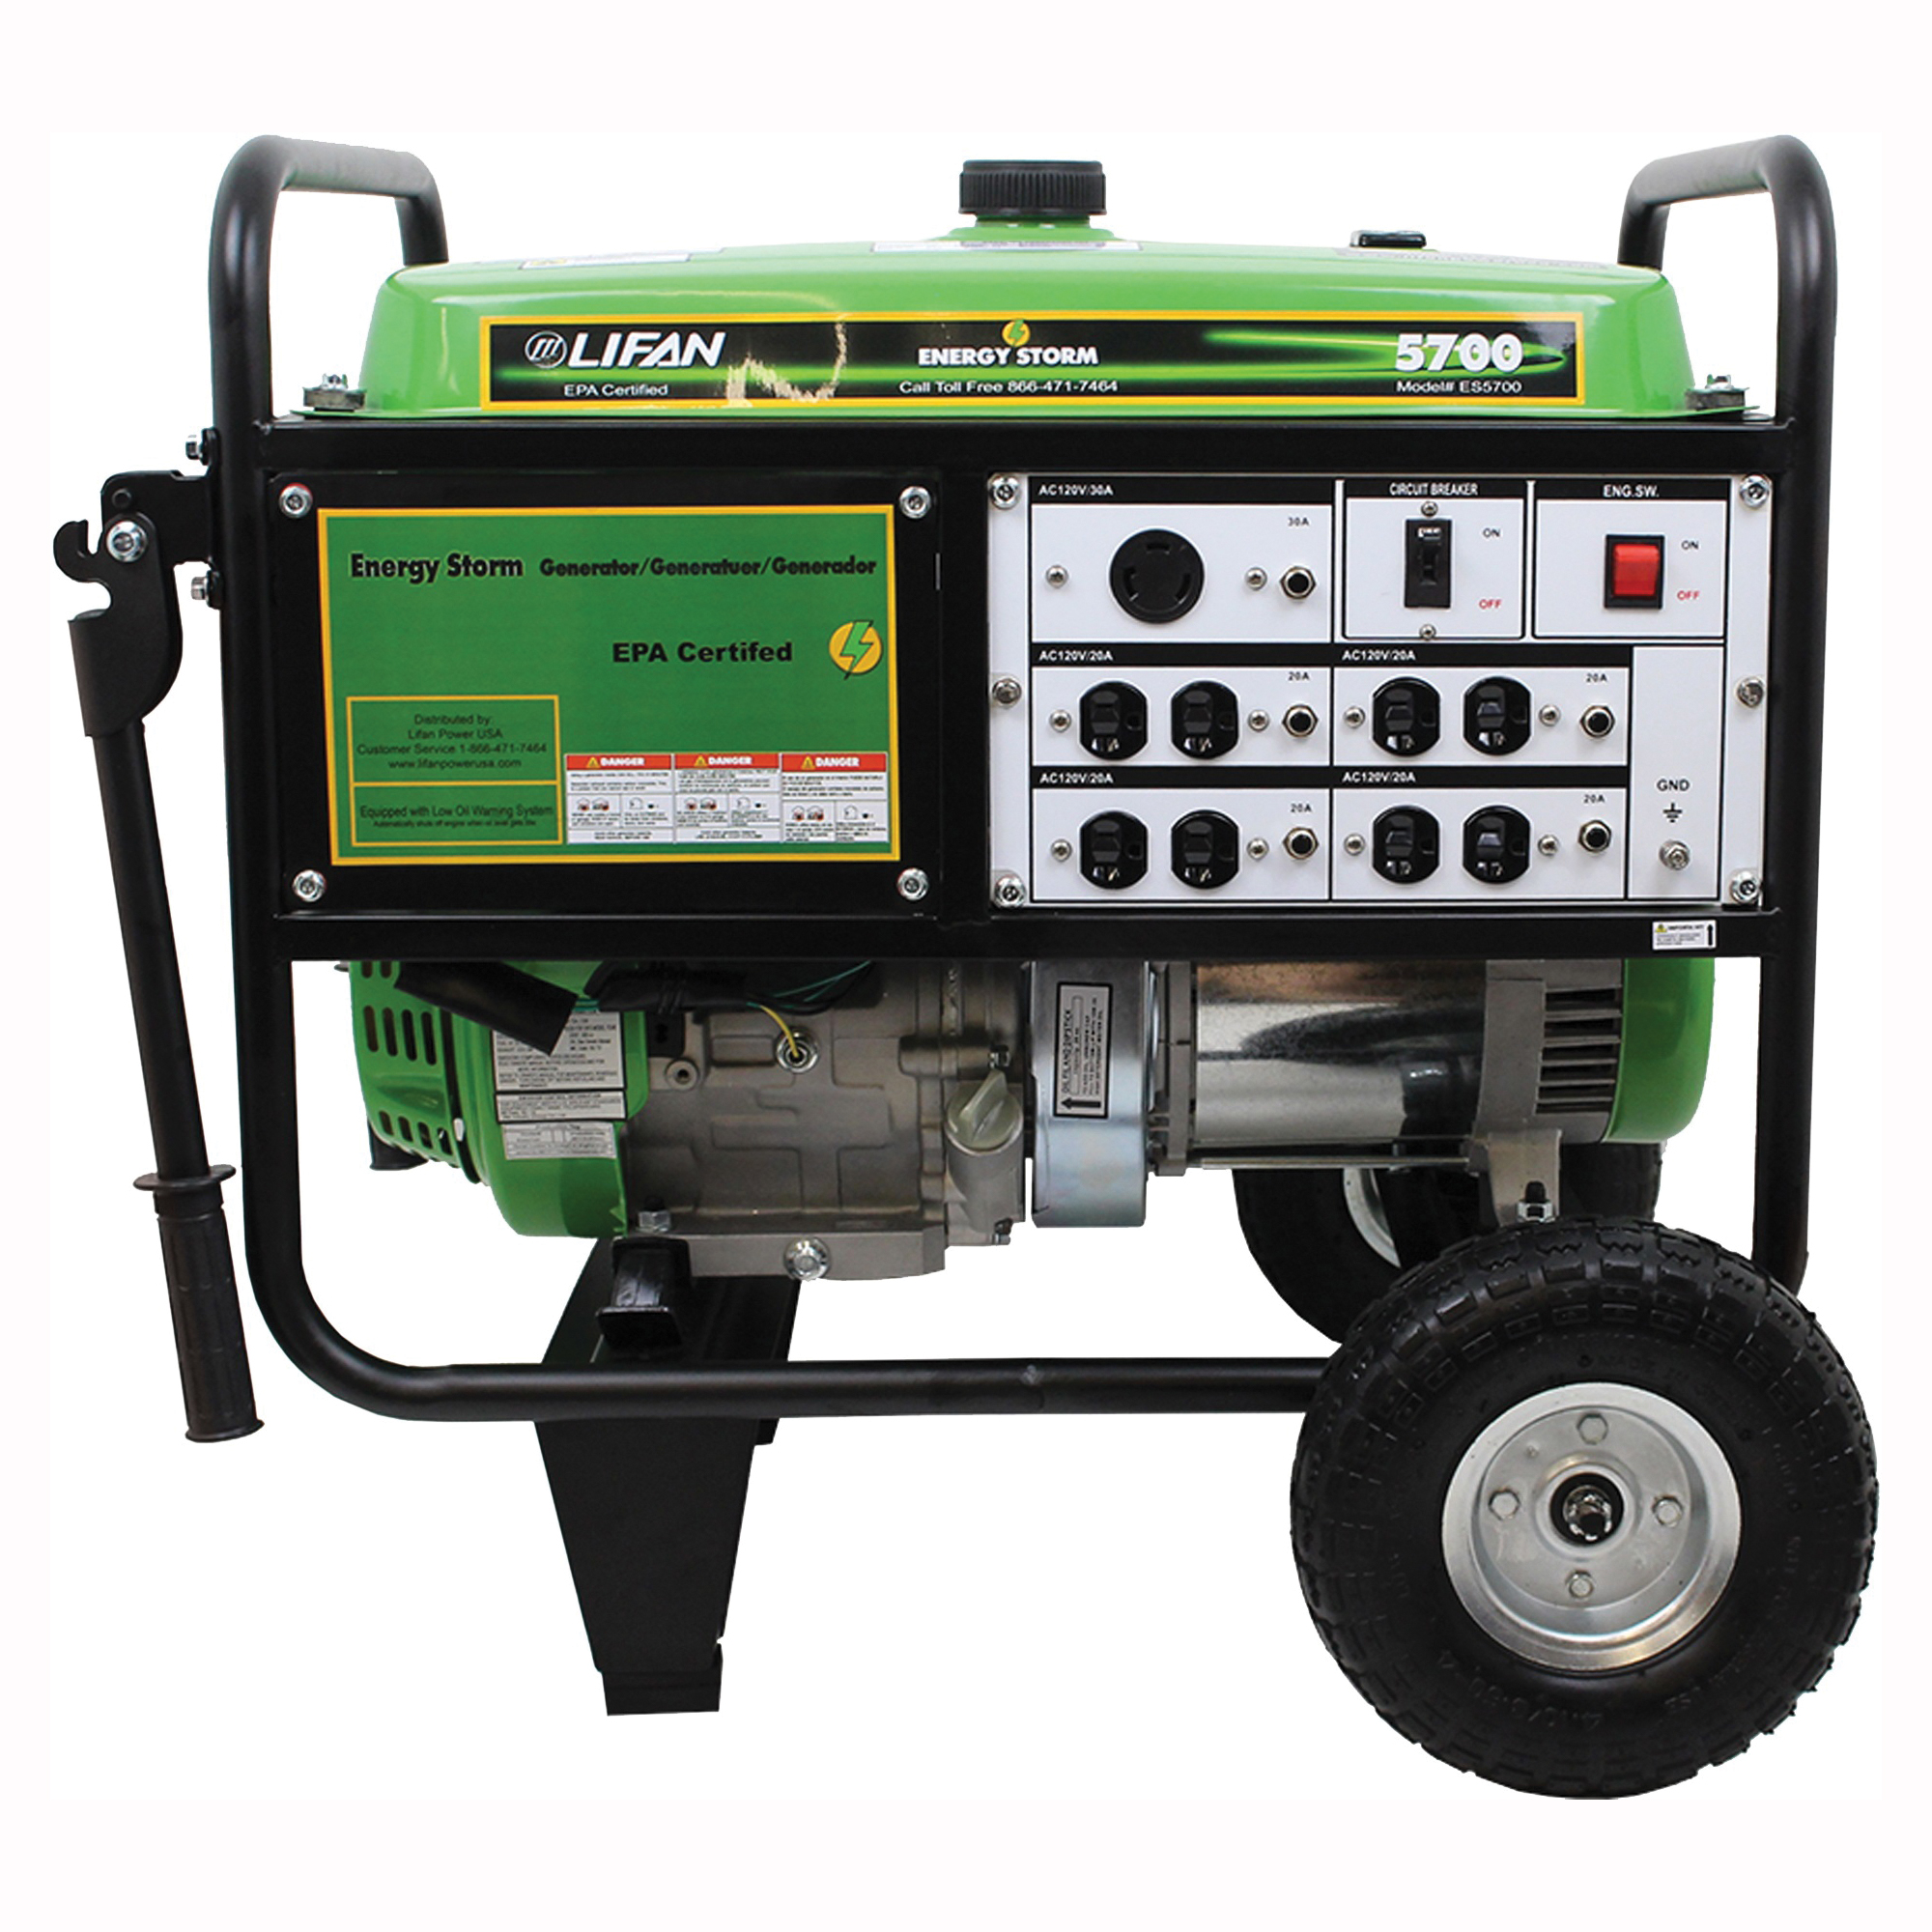 Picture of LIFAN ES5700 Portable Generator, 42.2 A, 120/240 V, 5700 W Output, Octane Gas, 6.5 gal Tank, 10 hr Run Time